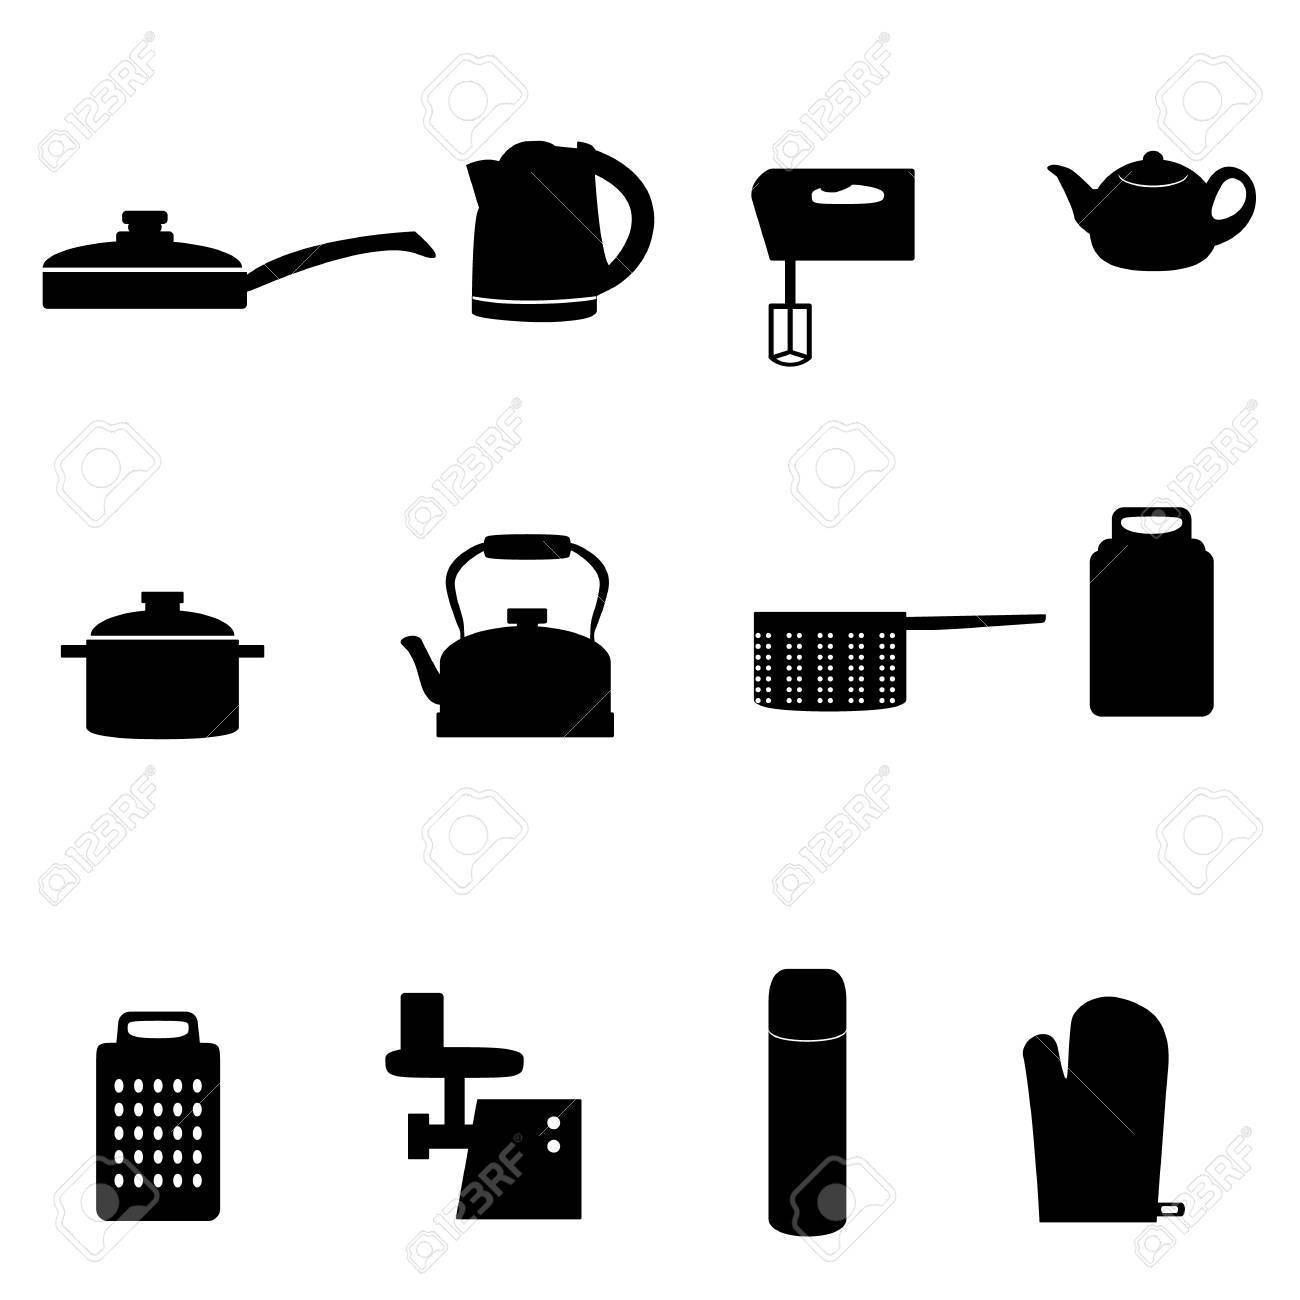 Set Of Icons Of Different Types Of Kitchen Appliances Royalty Free ...